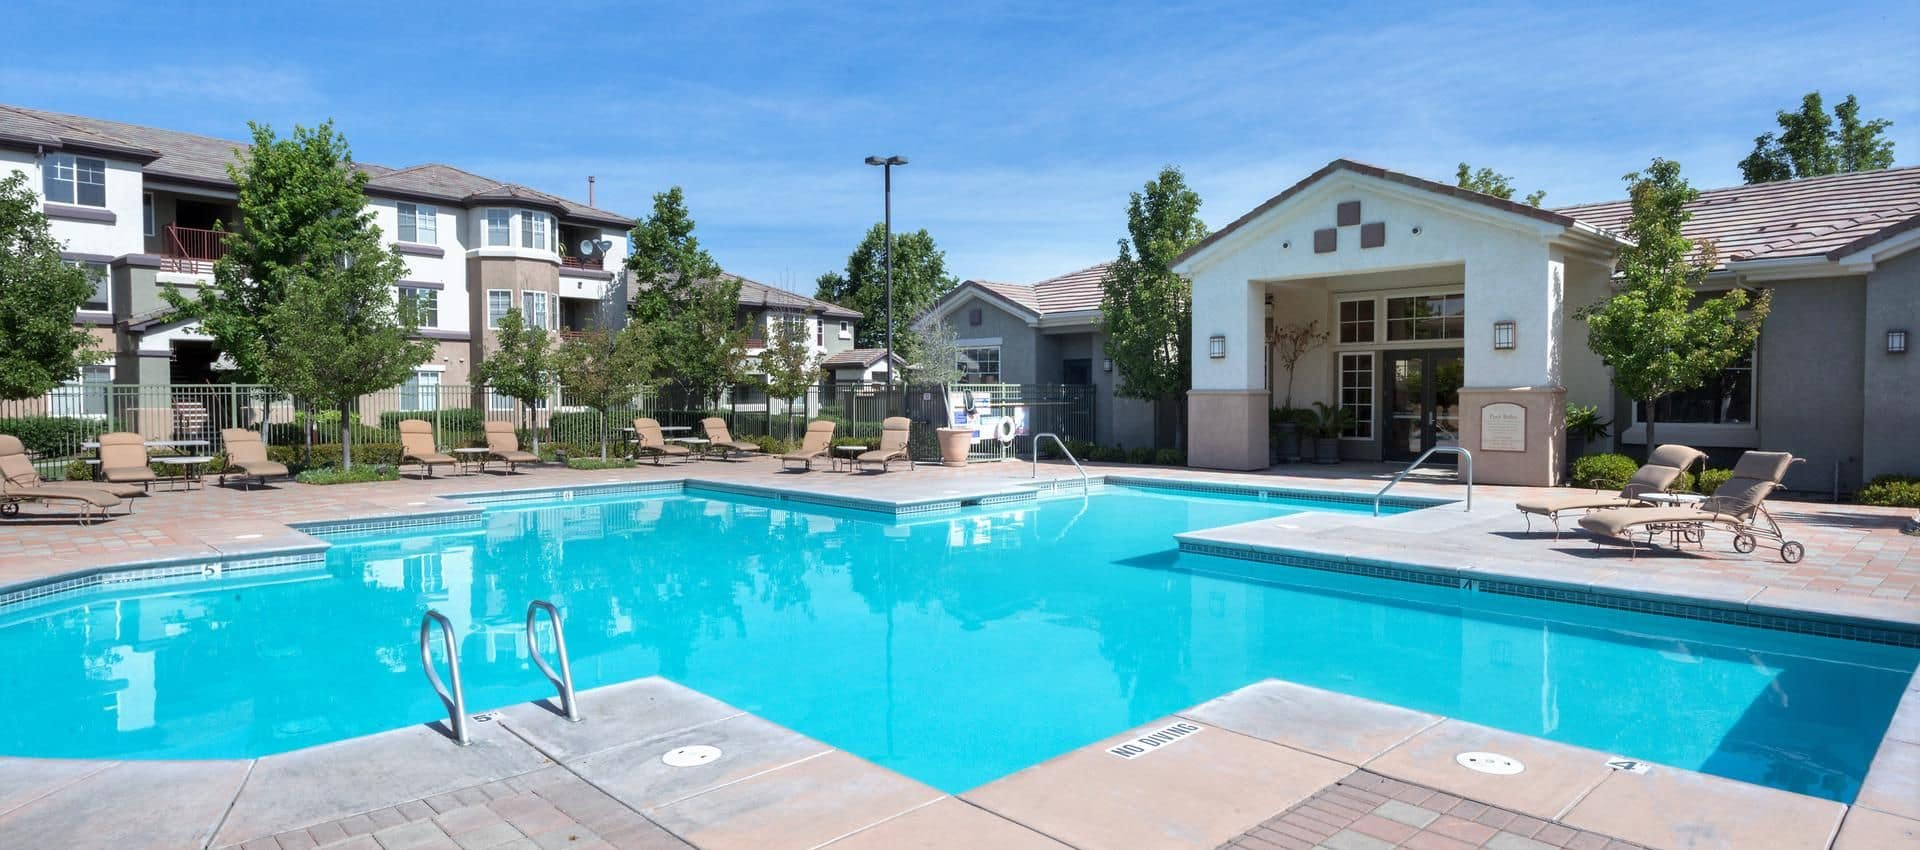 The Artisan Apartment Homes's Swimming Pool in Sacramento, CA